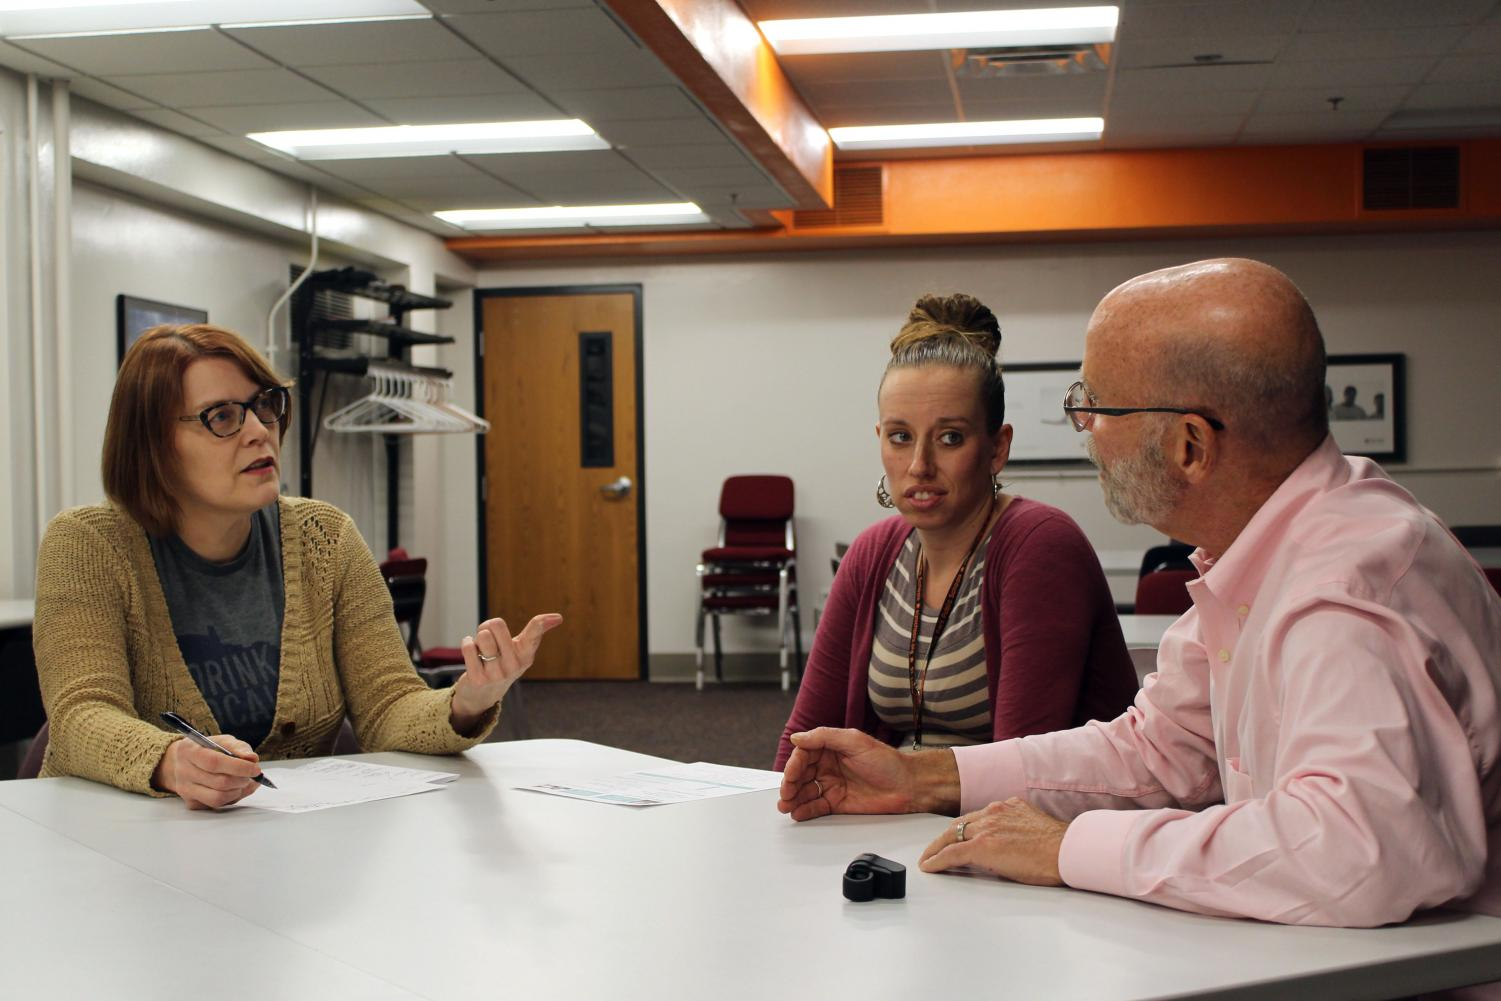 Park parent Paula Engelking attends a parent workshop with therapist Marc Hertz March 22. Engelking attended the conflict resolution session in order to find solutions for disputes with her children.